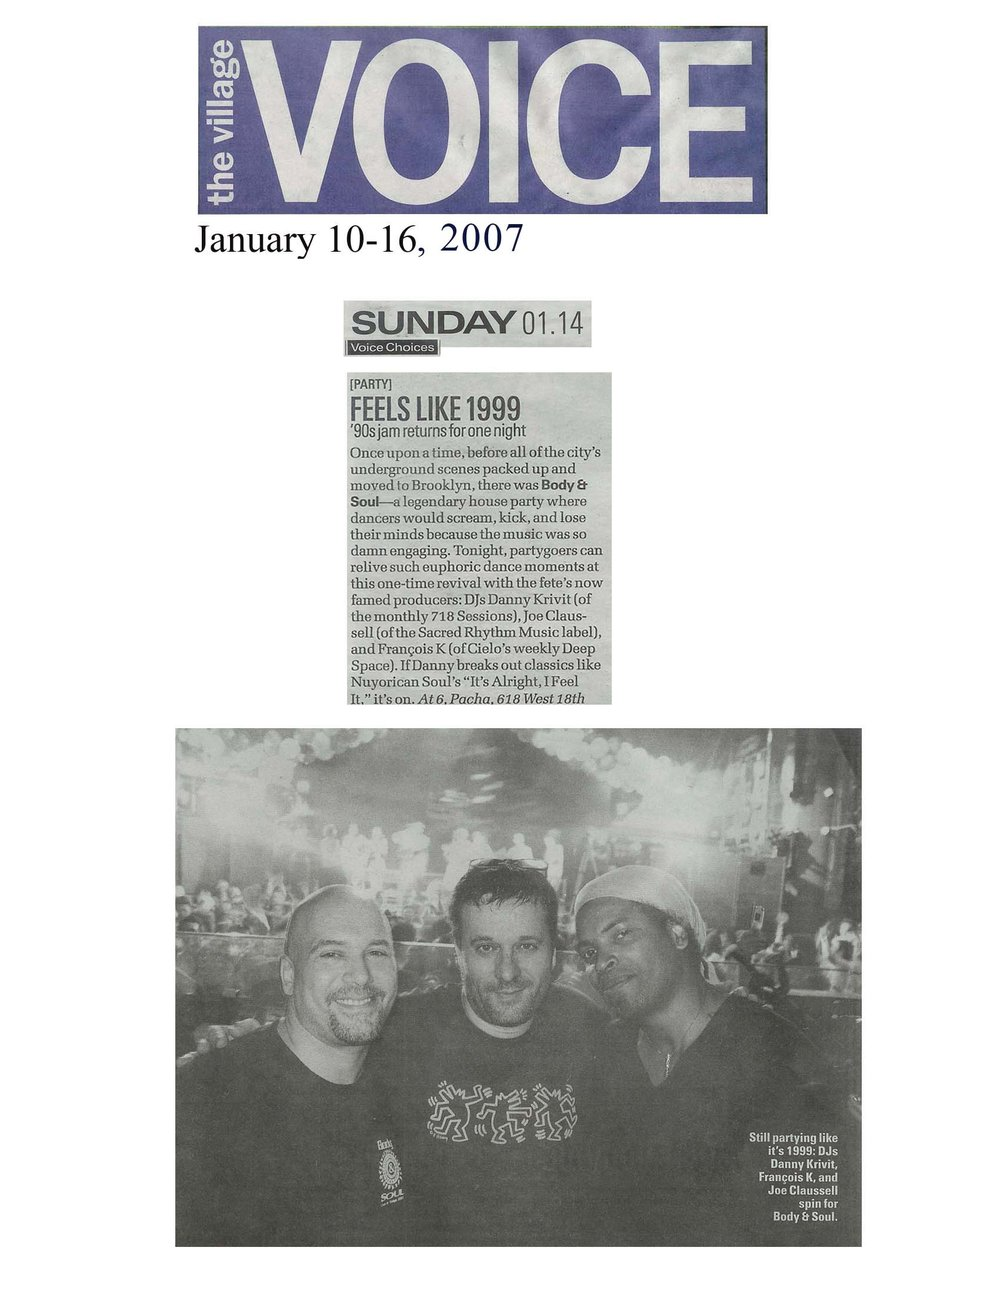 PRESS-VillageVoice__BodySoul_Pacha (1).jpeg